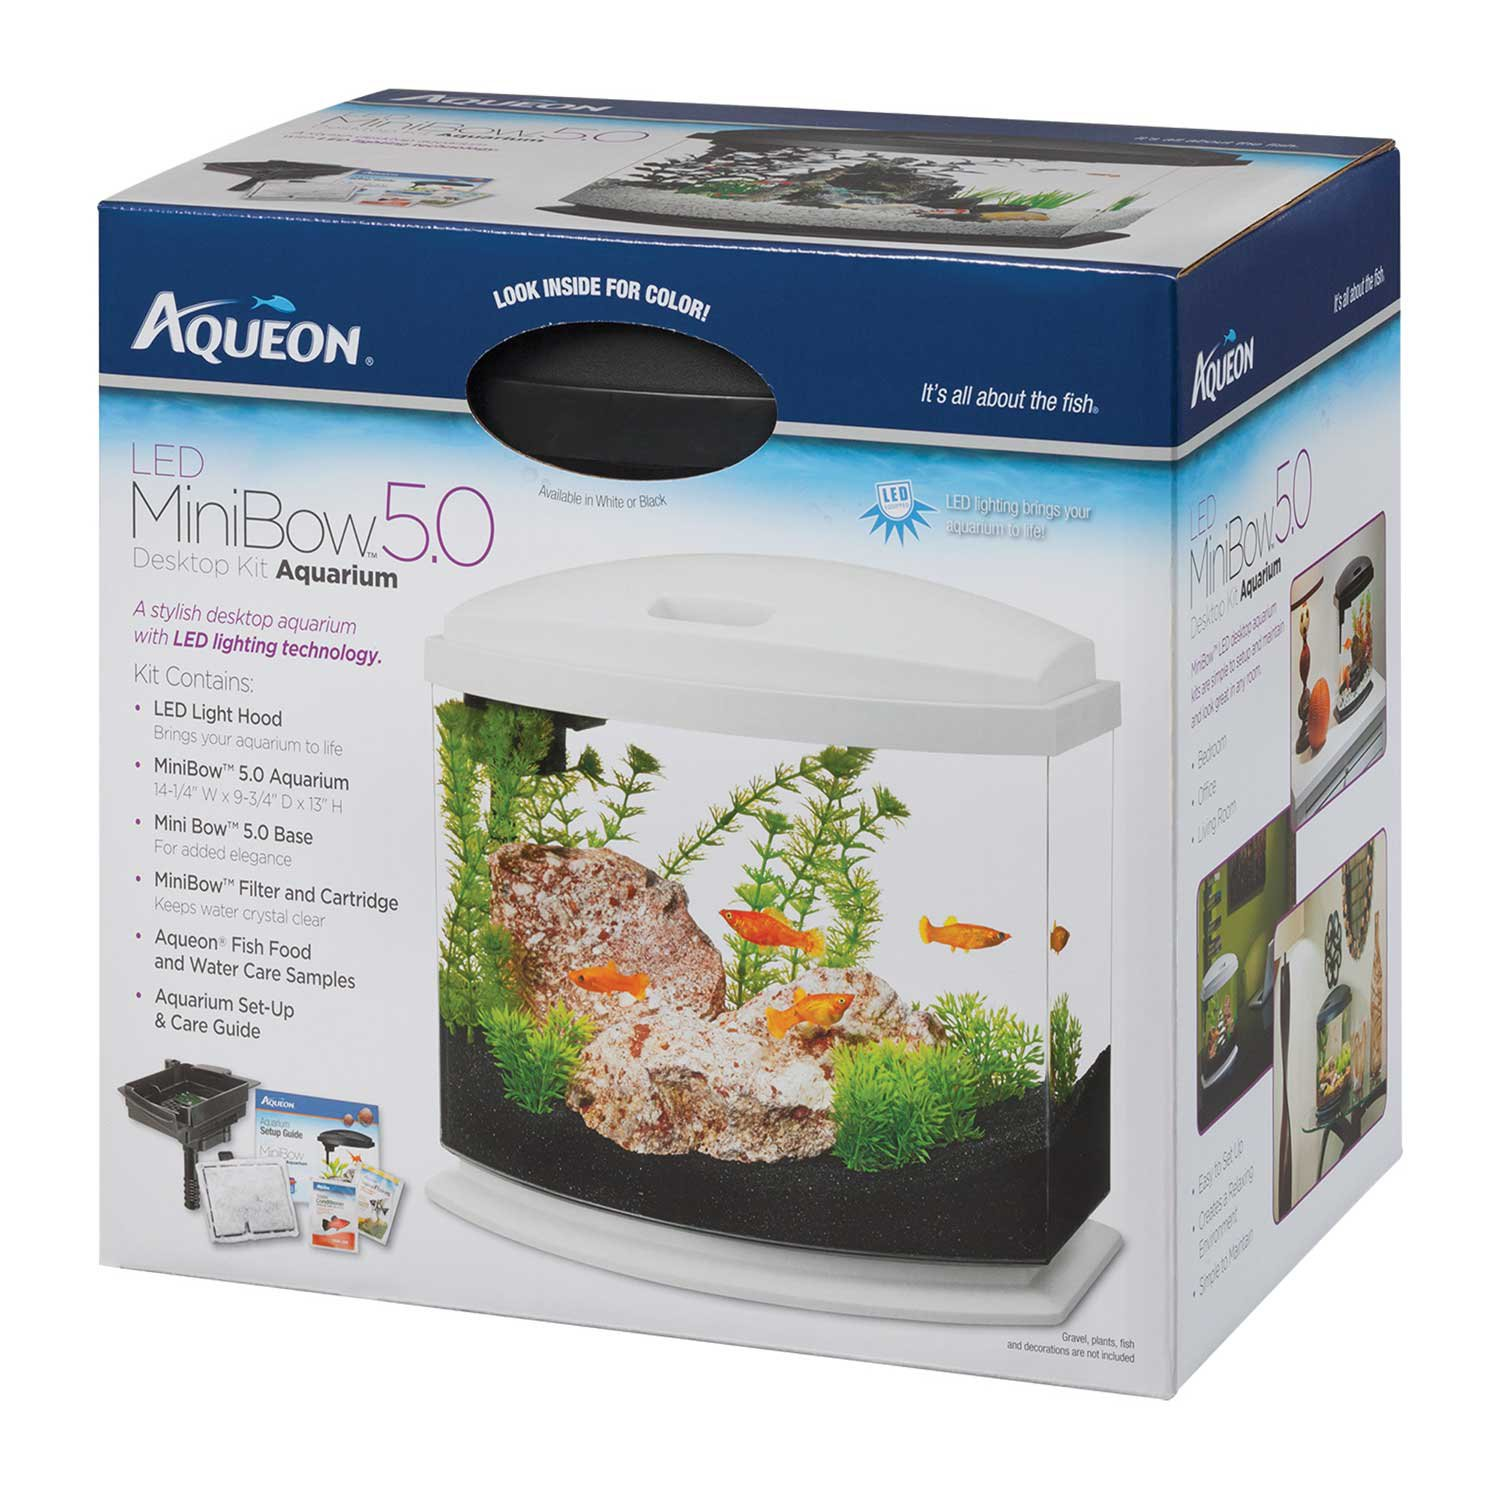 Aqueon minibow led desktop fish aquarium kit in white petco for 20 gallon fish tank kit